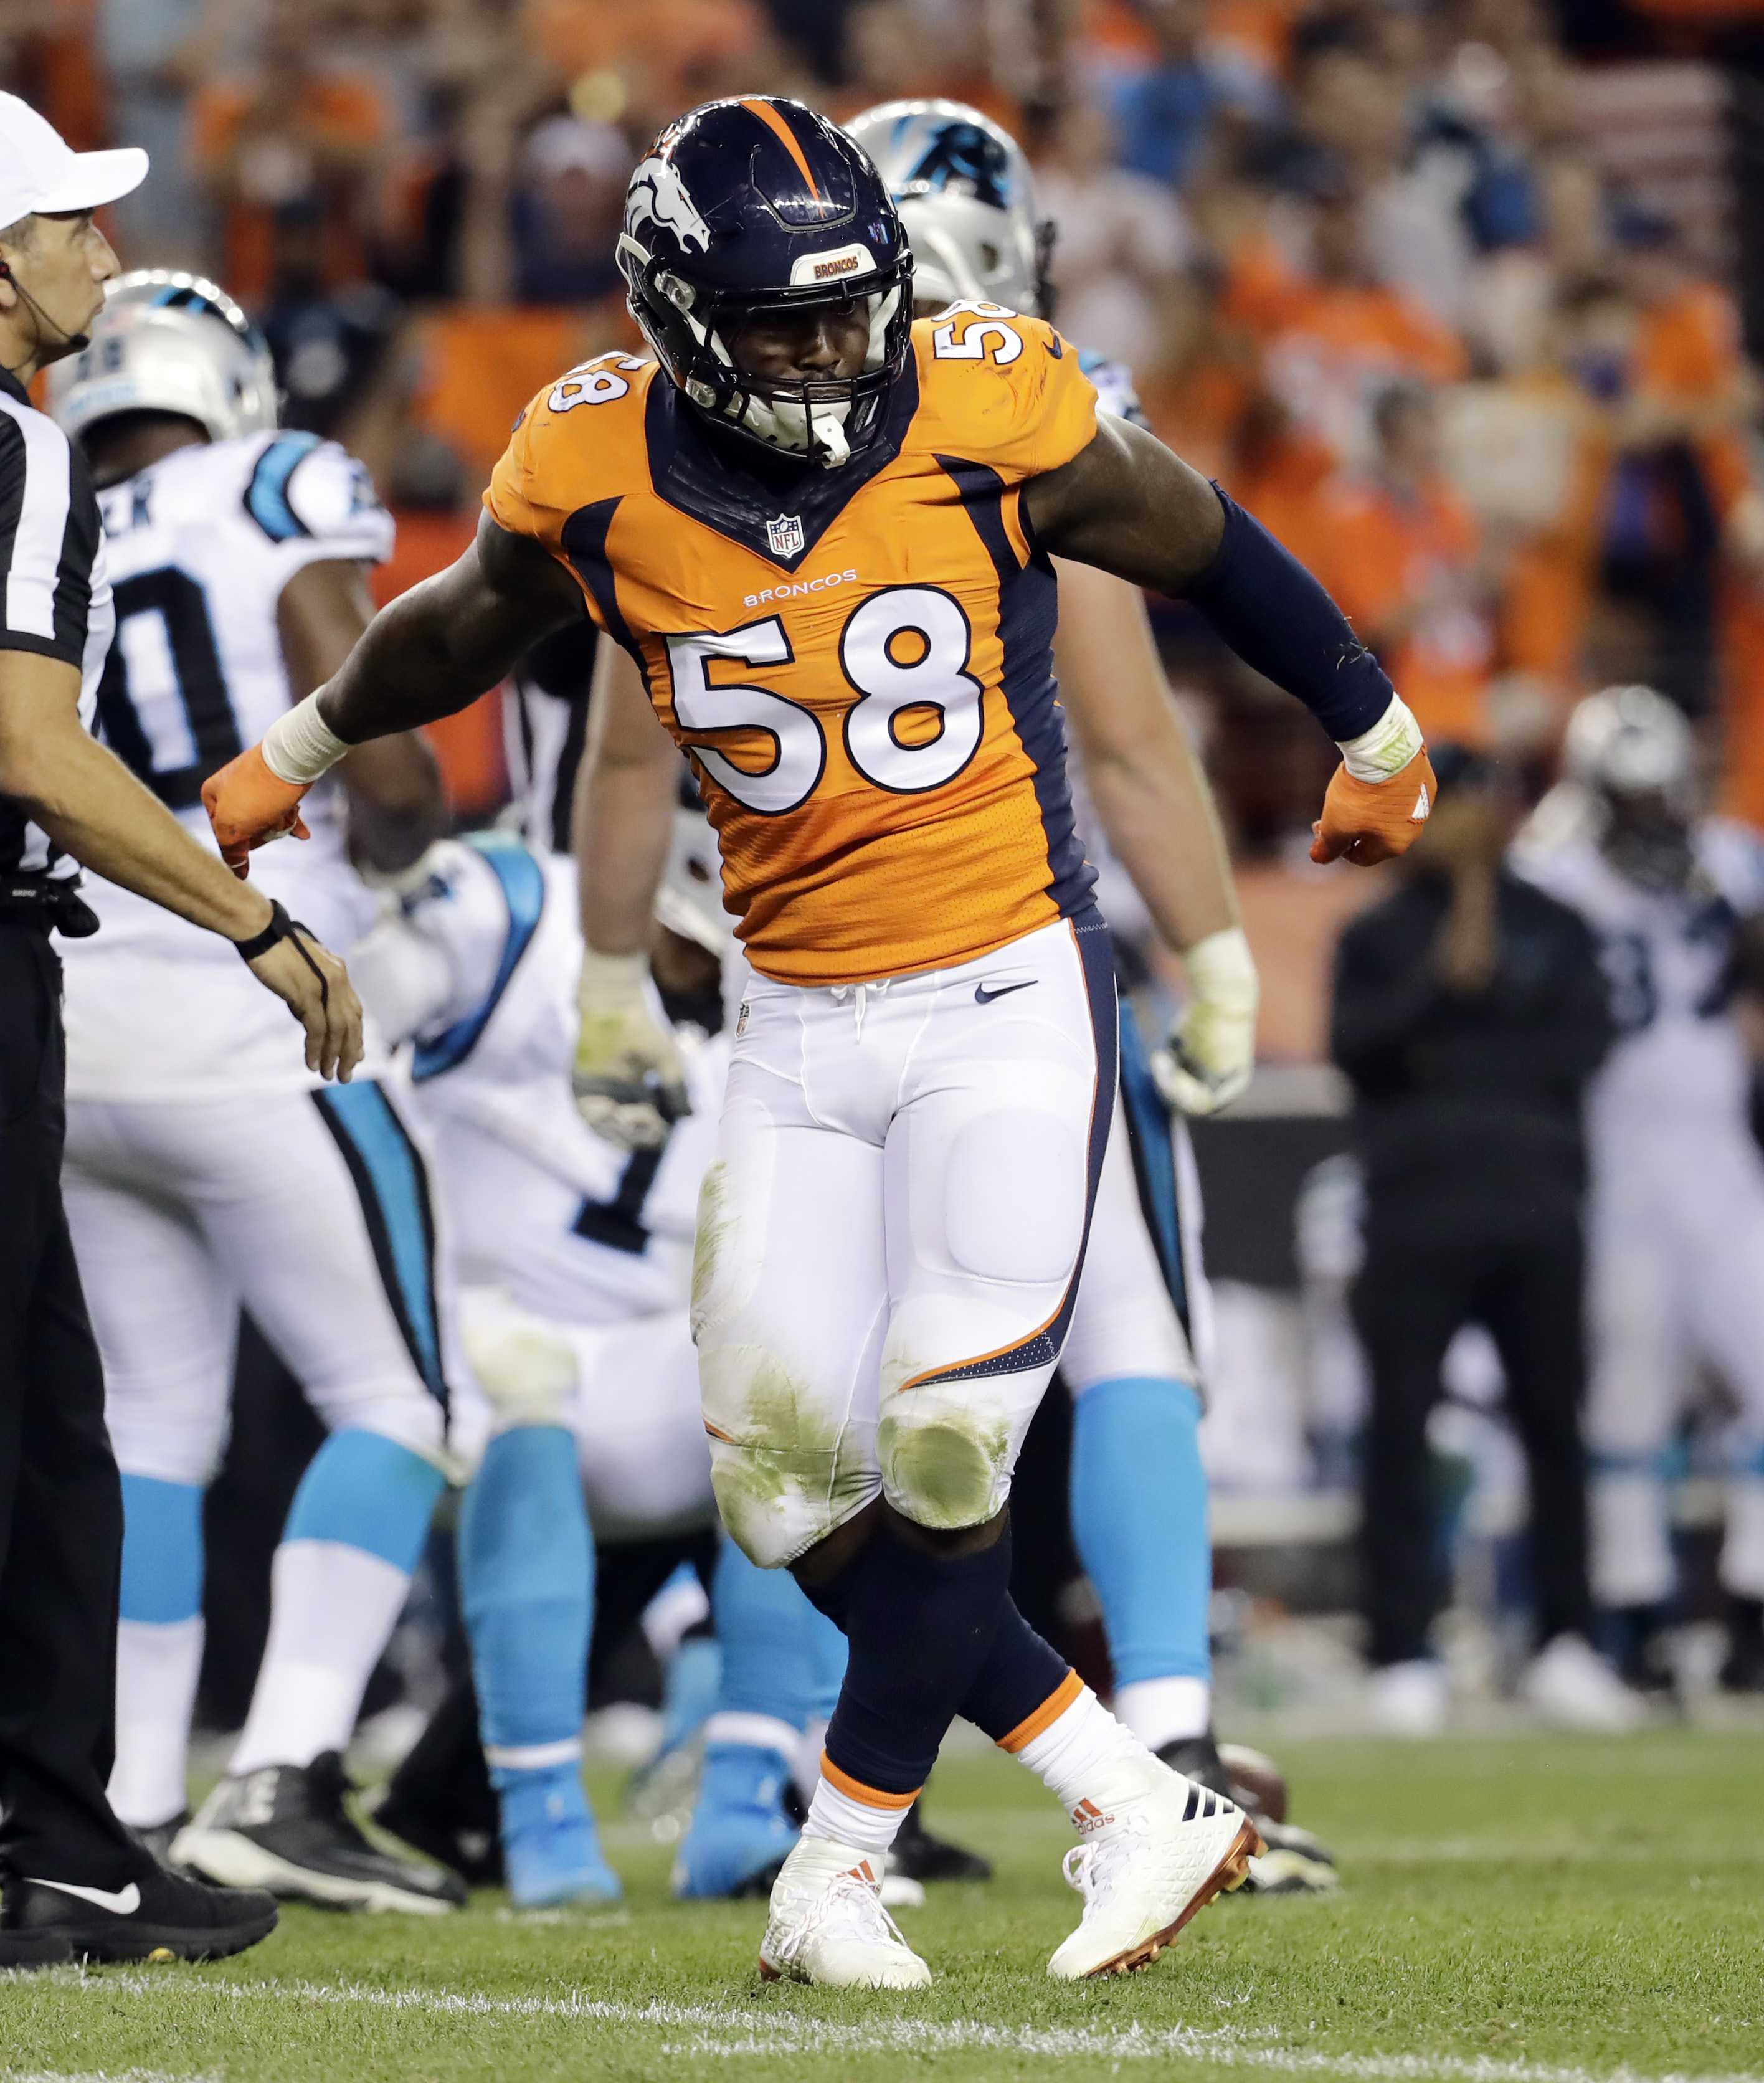 FILE - In this Sept. 8, 2016, file photo, Denver Broncos outside linebacker Von Miller (58) celebrates his sack against the Carolina Panthers during the second half of an NFL football game, in Denver. Von Miller's lead-leading sack total jumped to 13. The